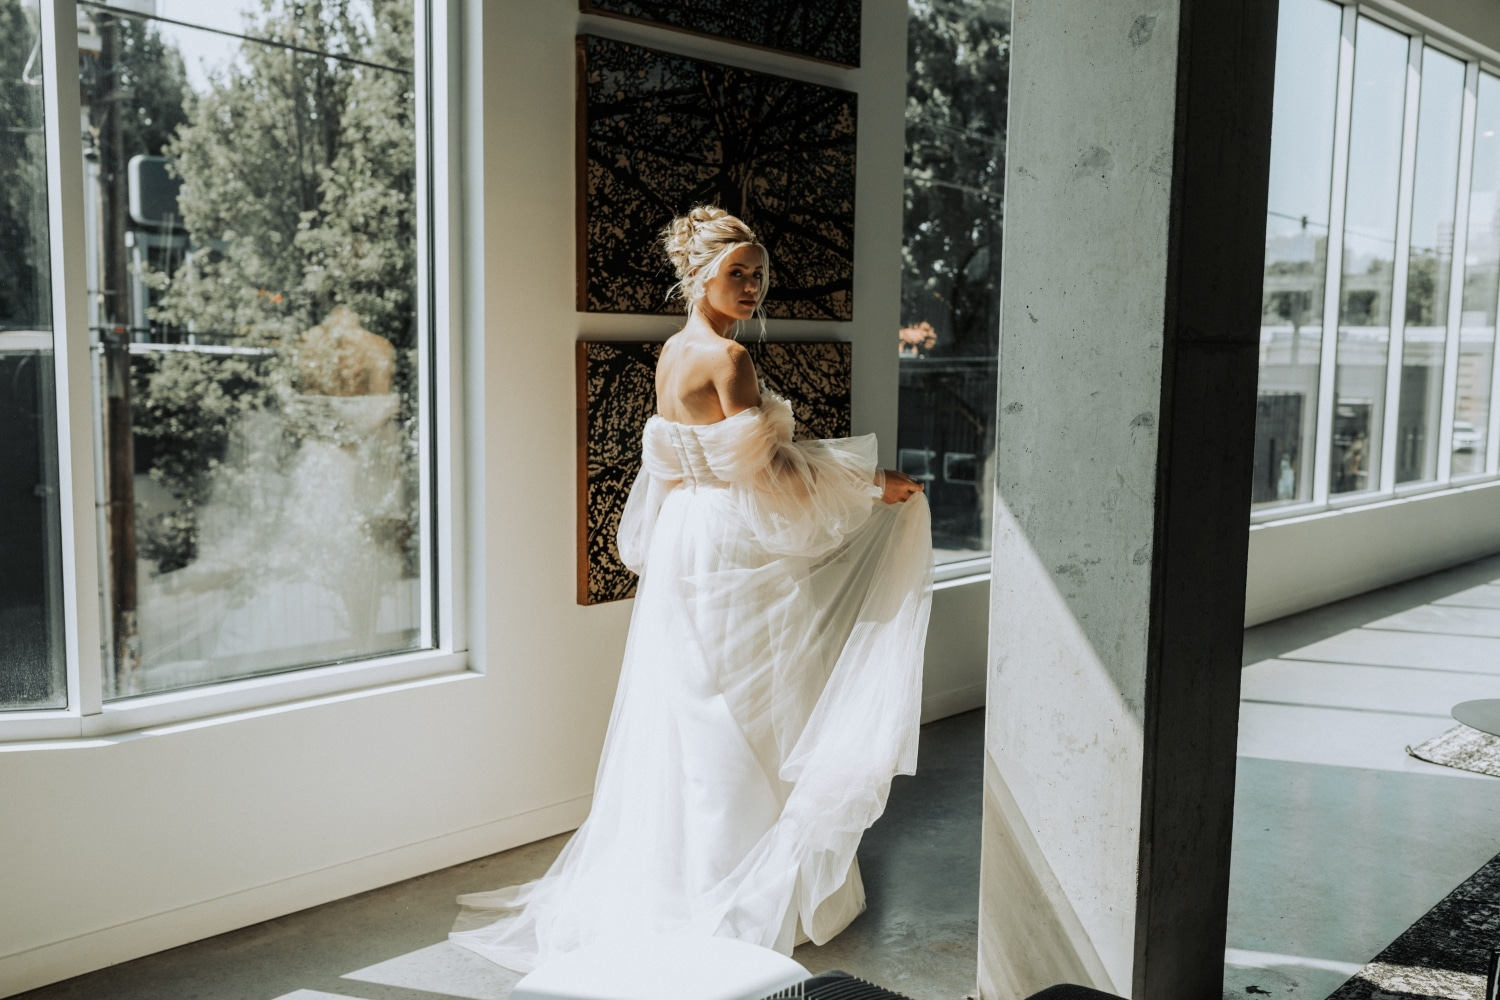 bride in hallway accentuating the long train in her flowing strapless gown